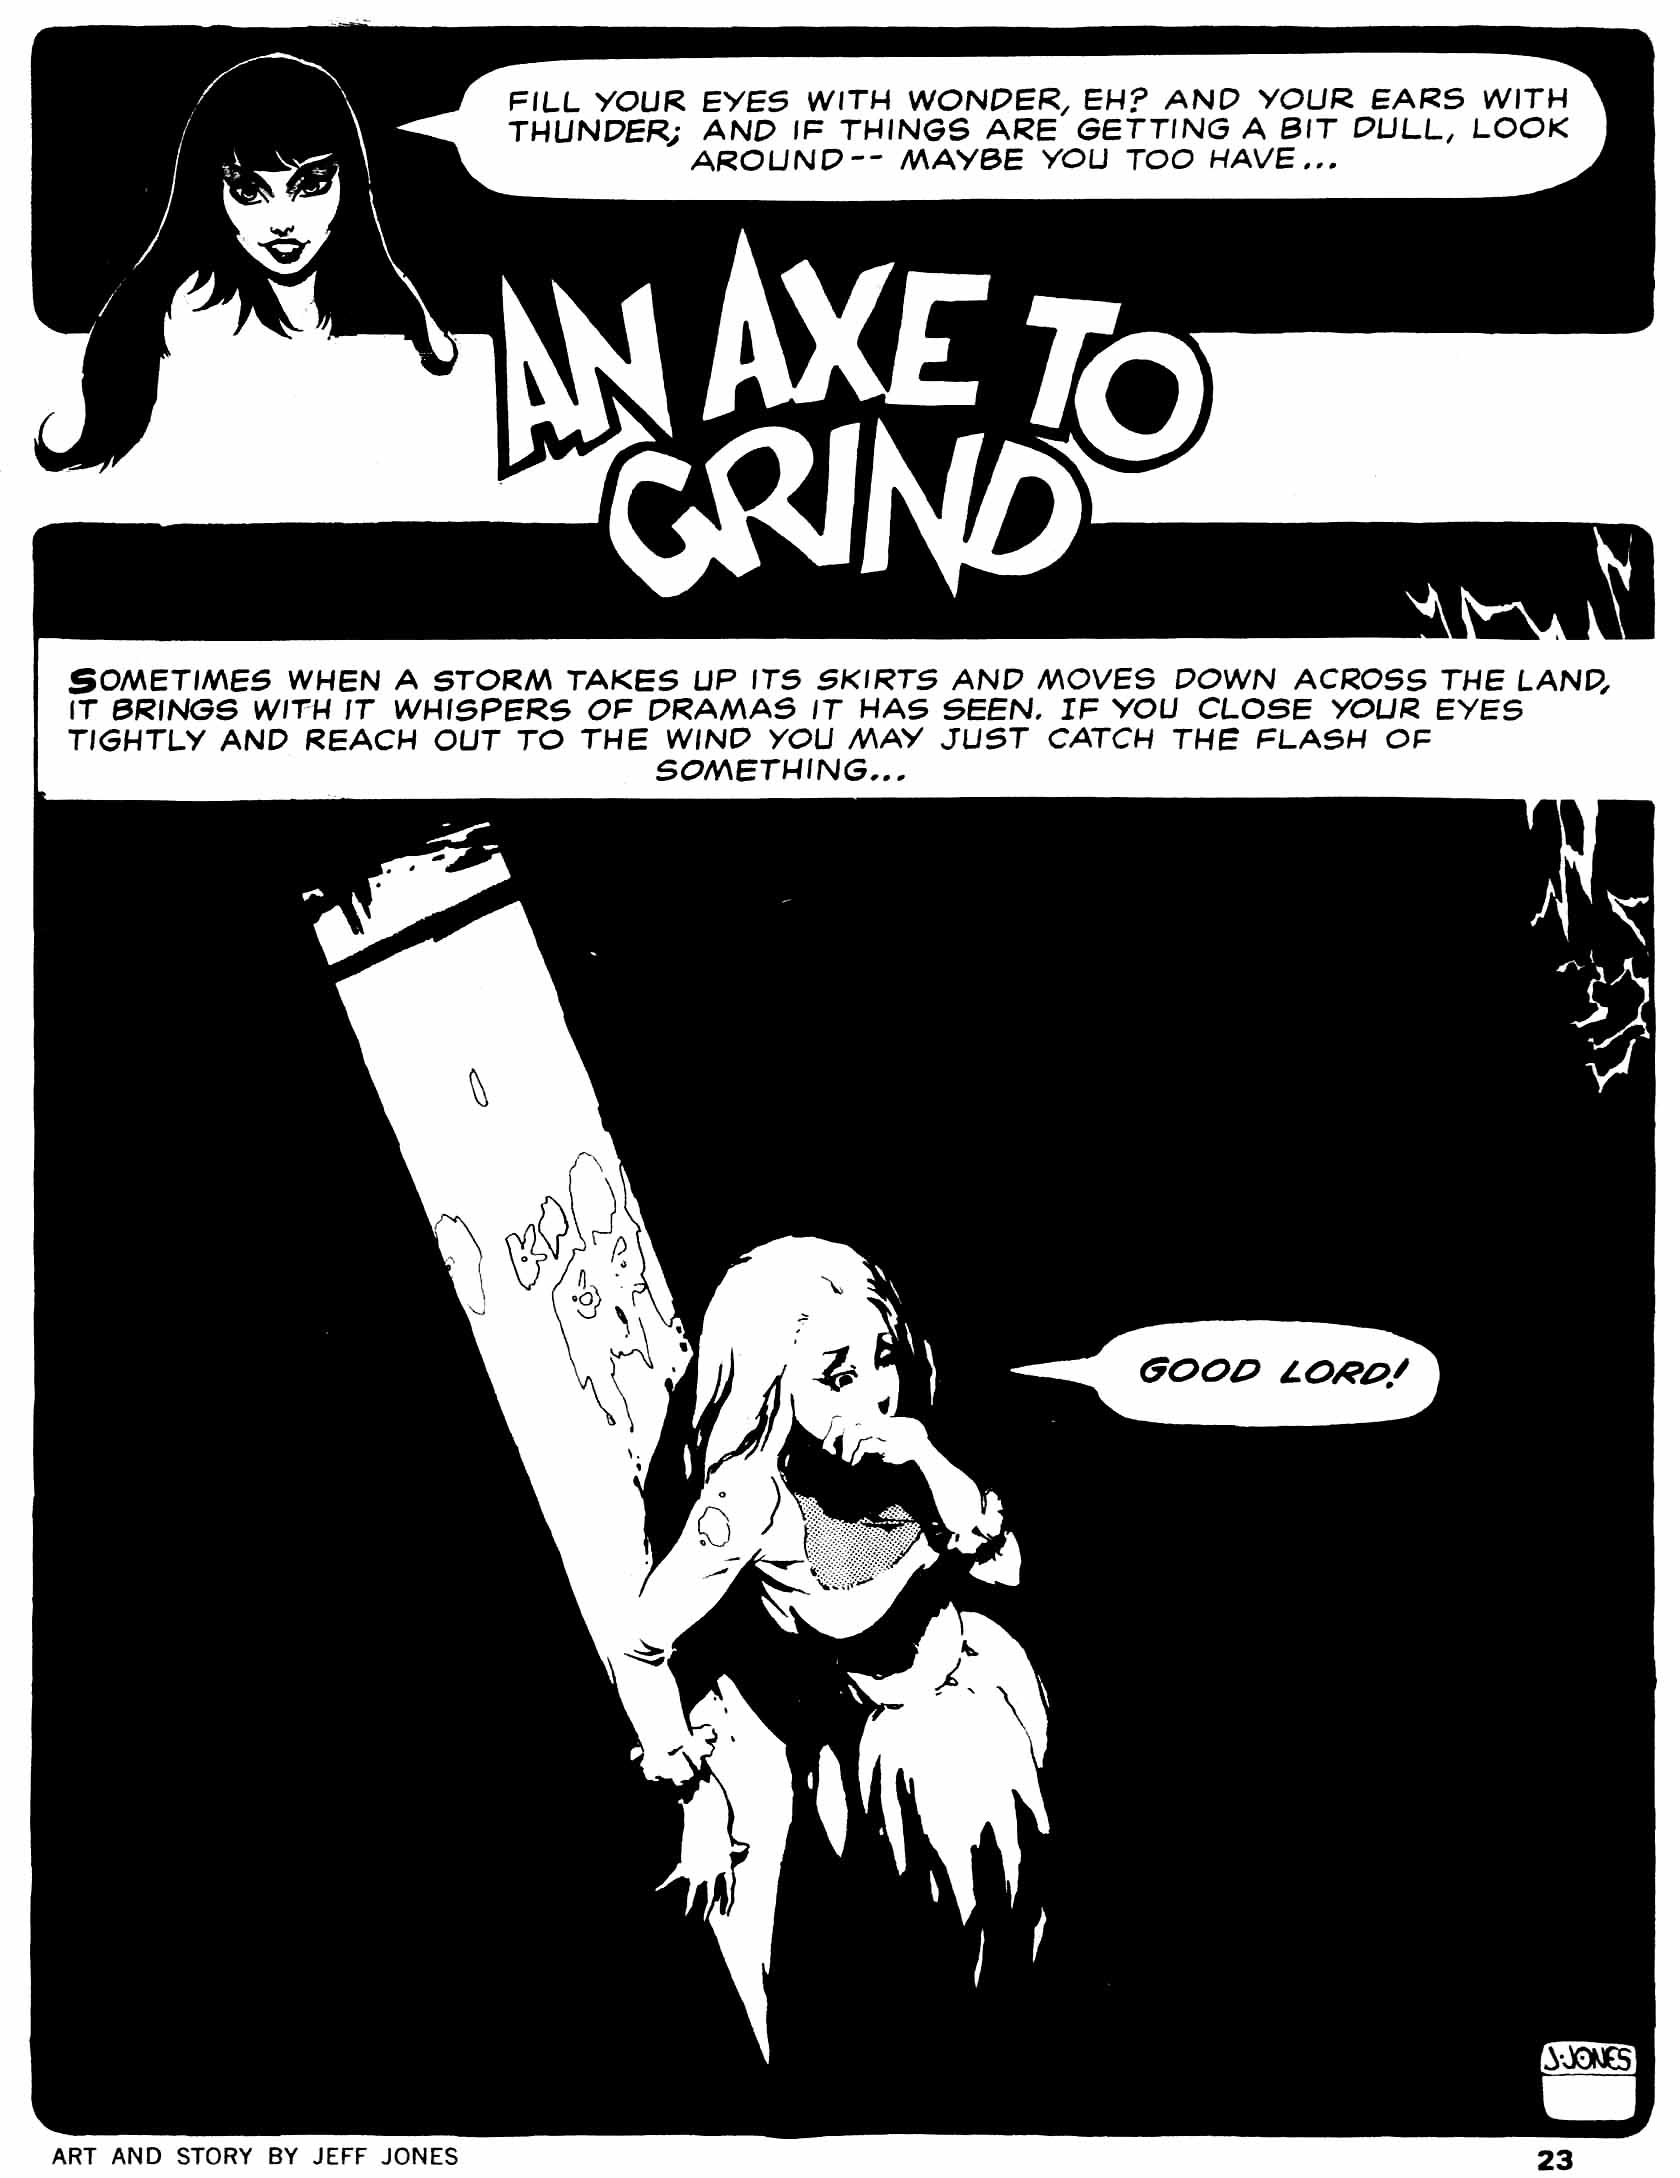 An Axe to Grind From Vampirella #5 (June 1970)